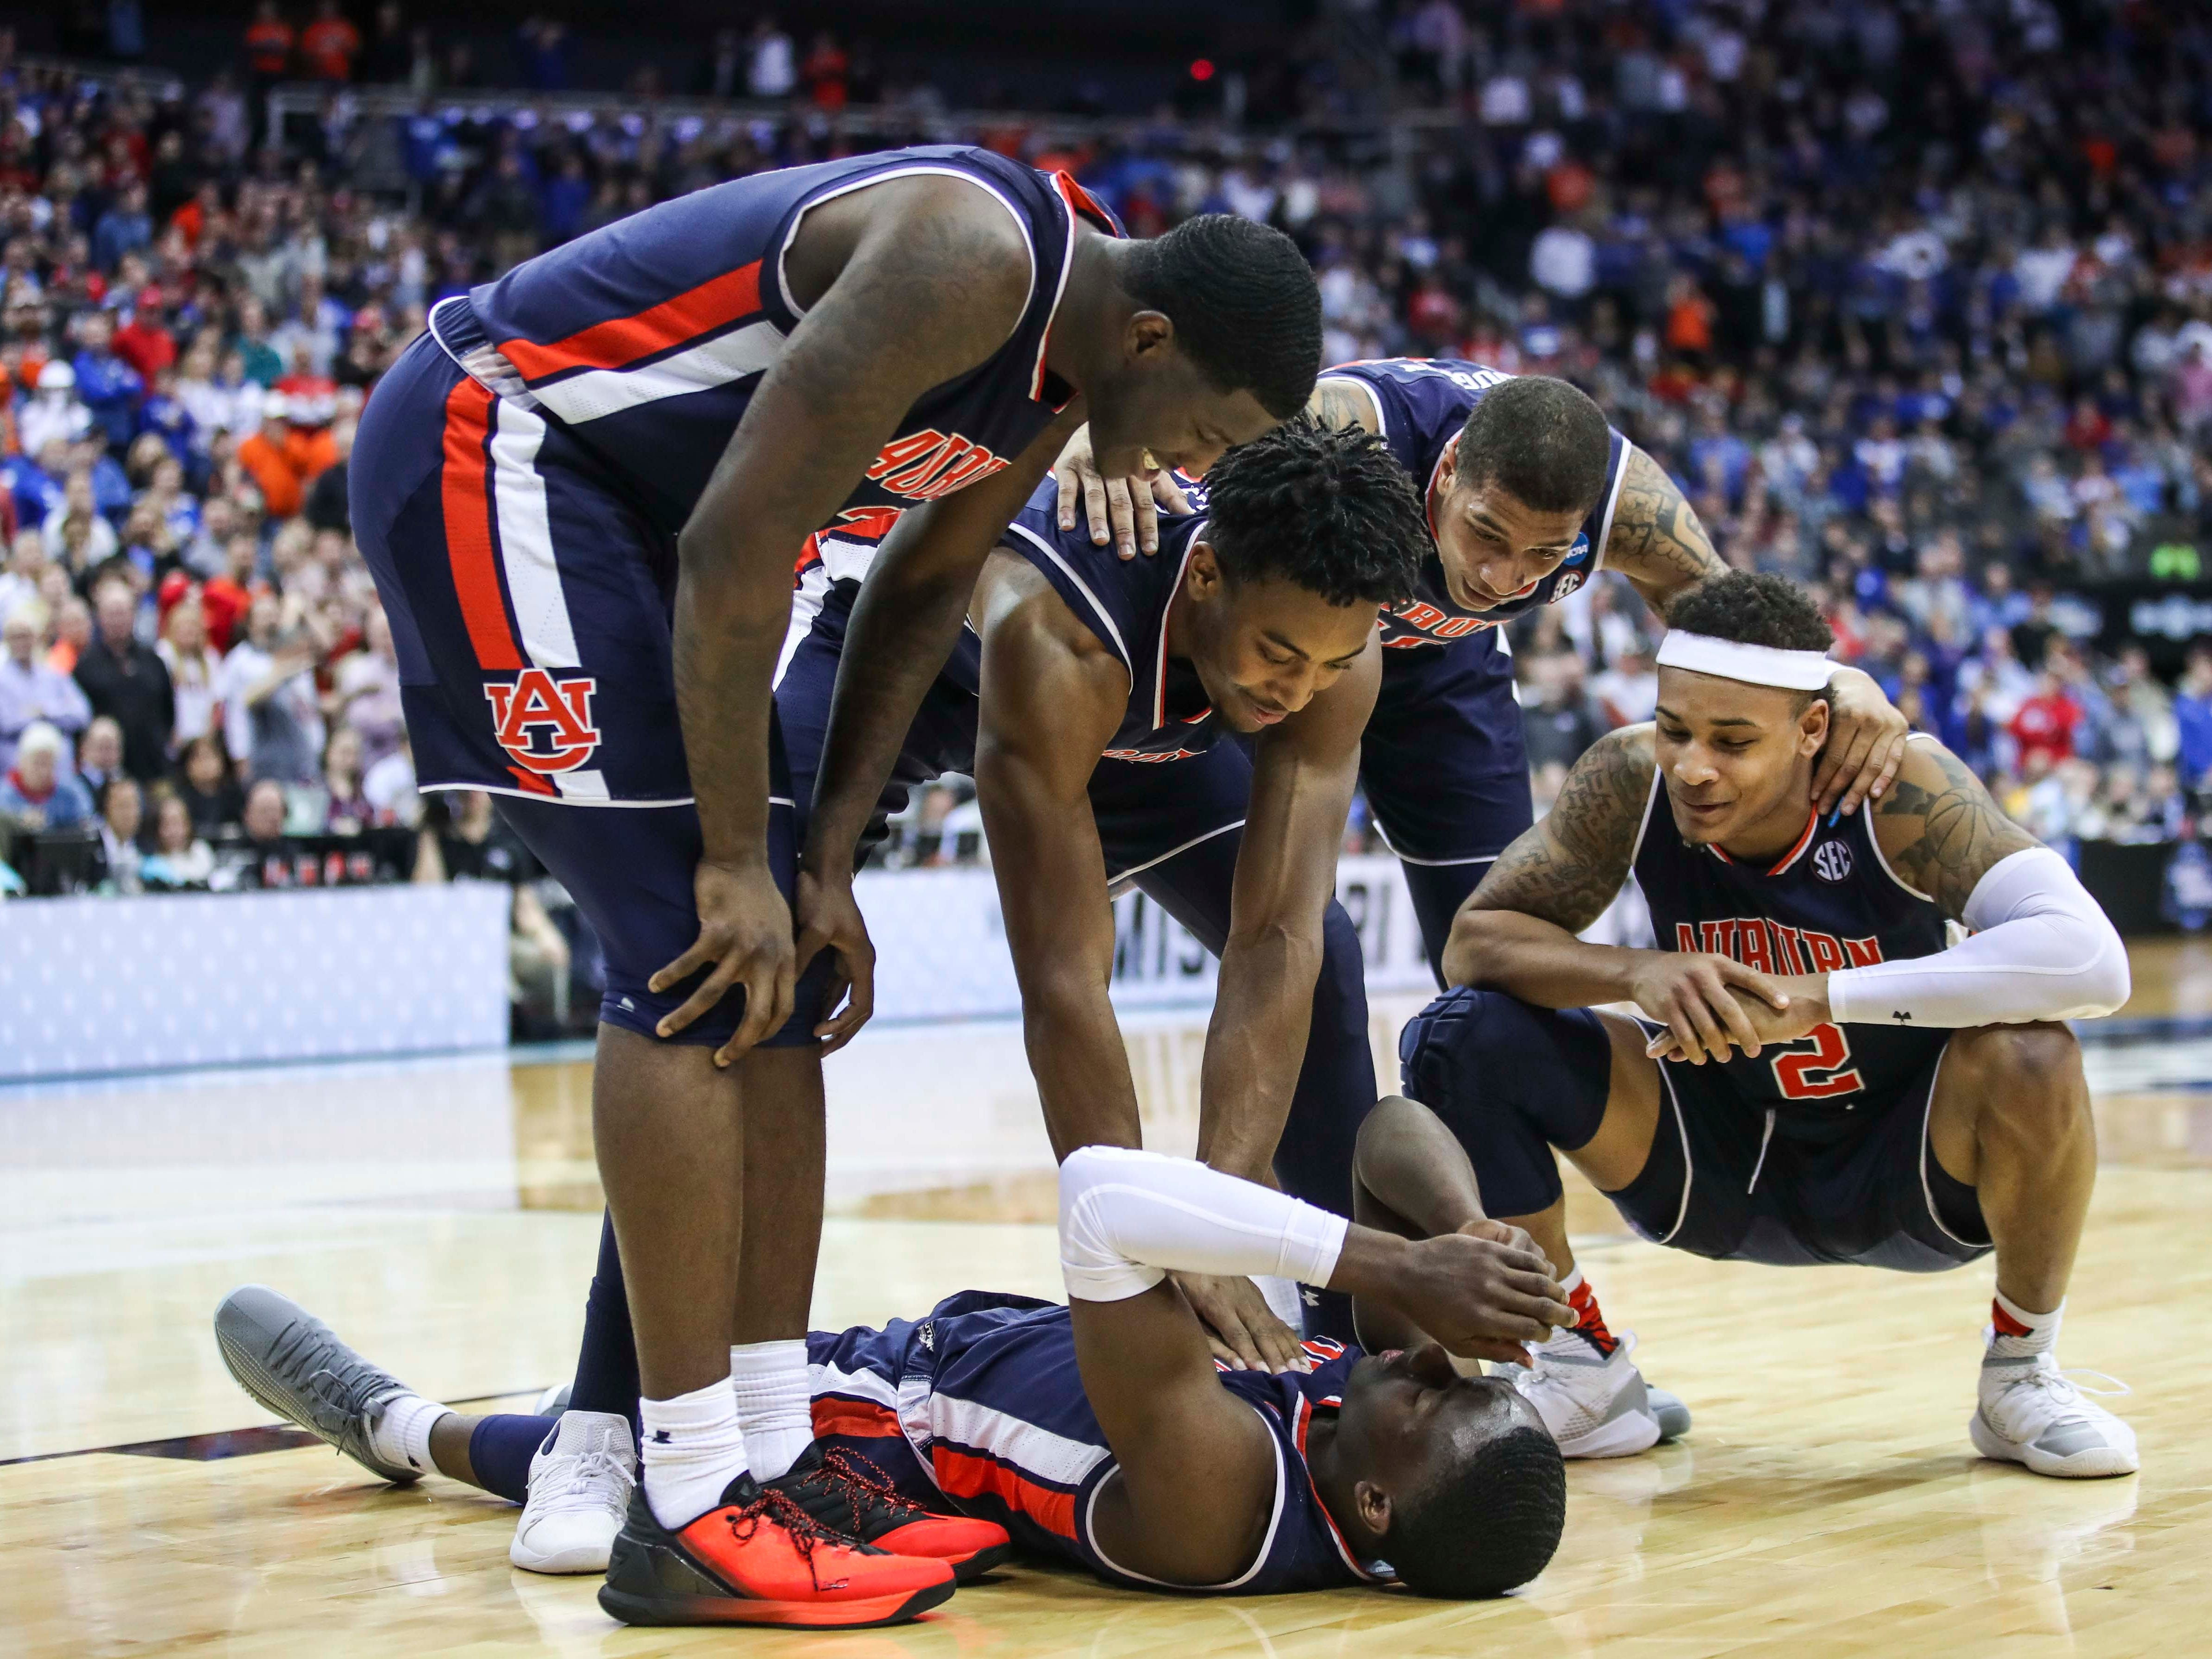 Auburn players surround teammate Jared Harper in the waning second as Wildcats fell to Auburn 77-71 Sunday afternoon in the Elite Eight. March 31, 2019